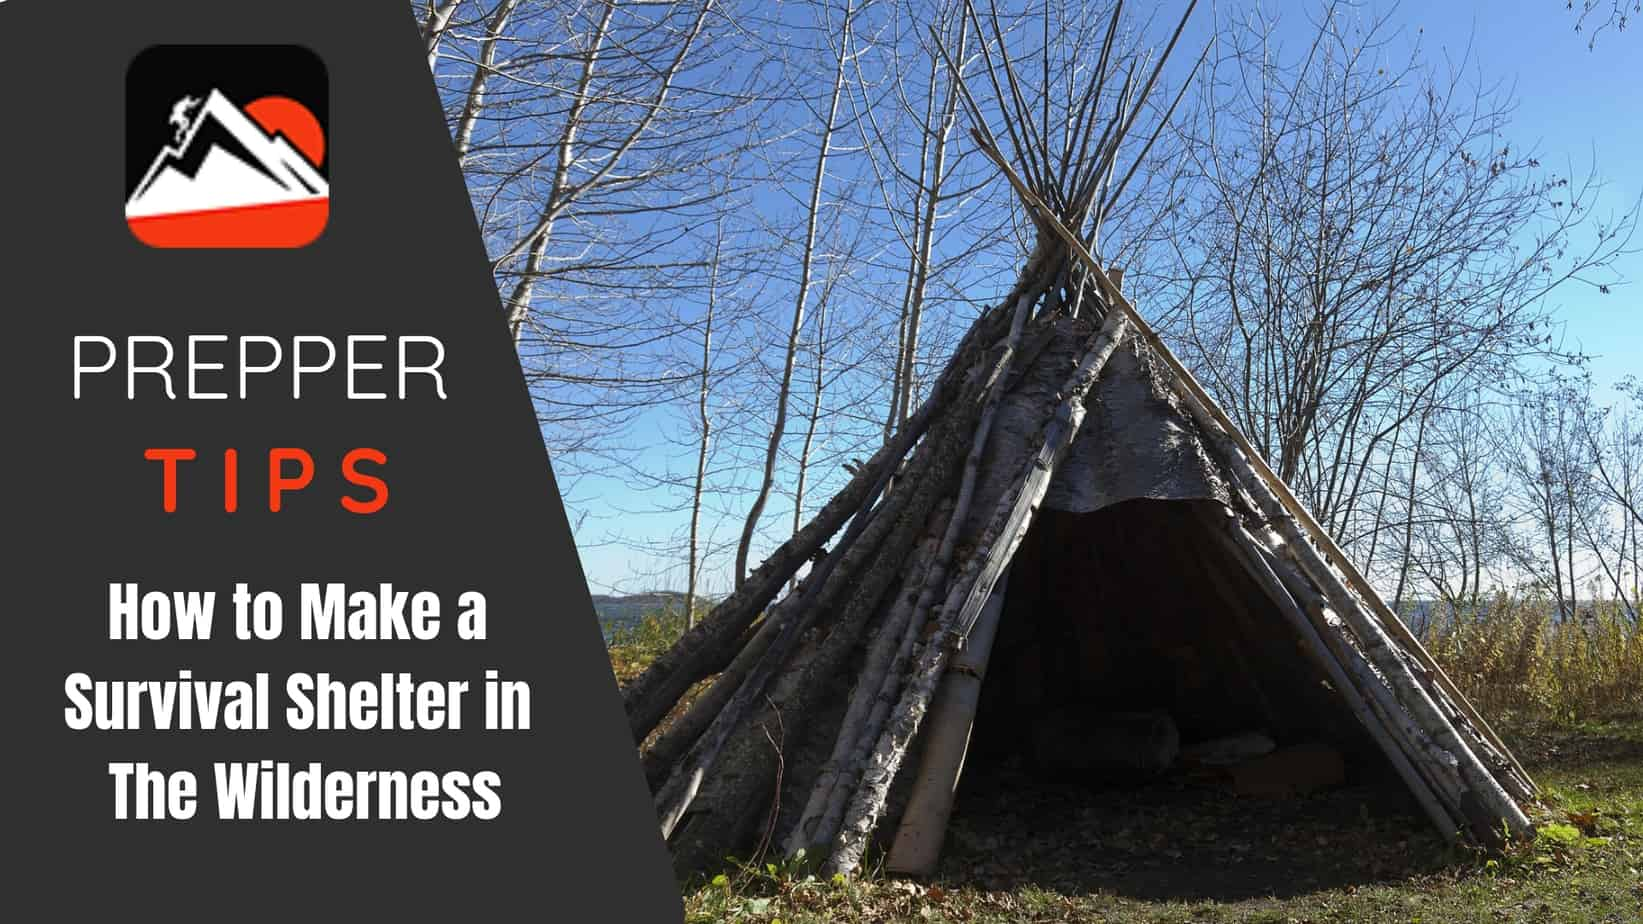 how-to-make-a-survival-shelter-in-the-wilderness